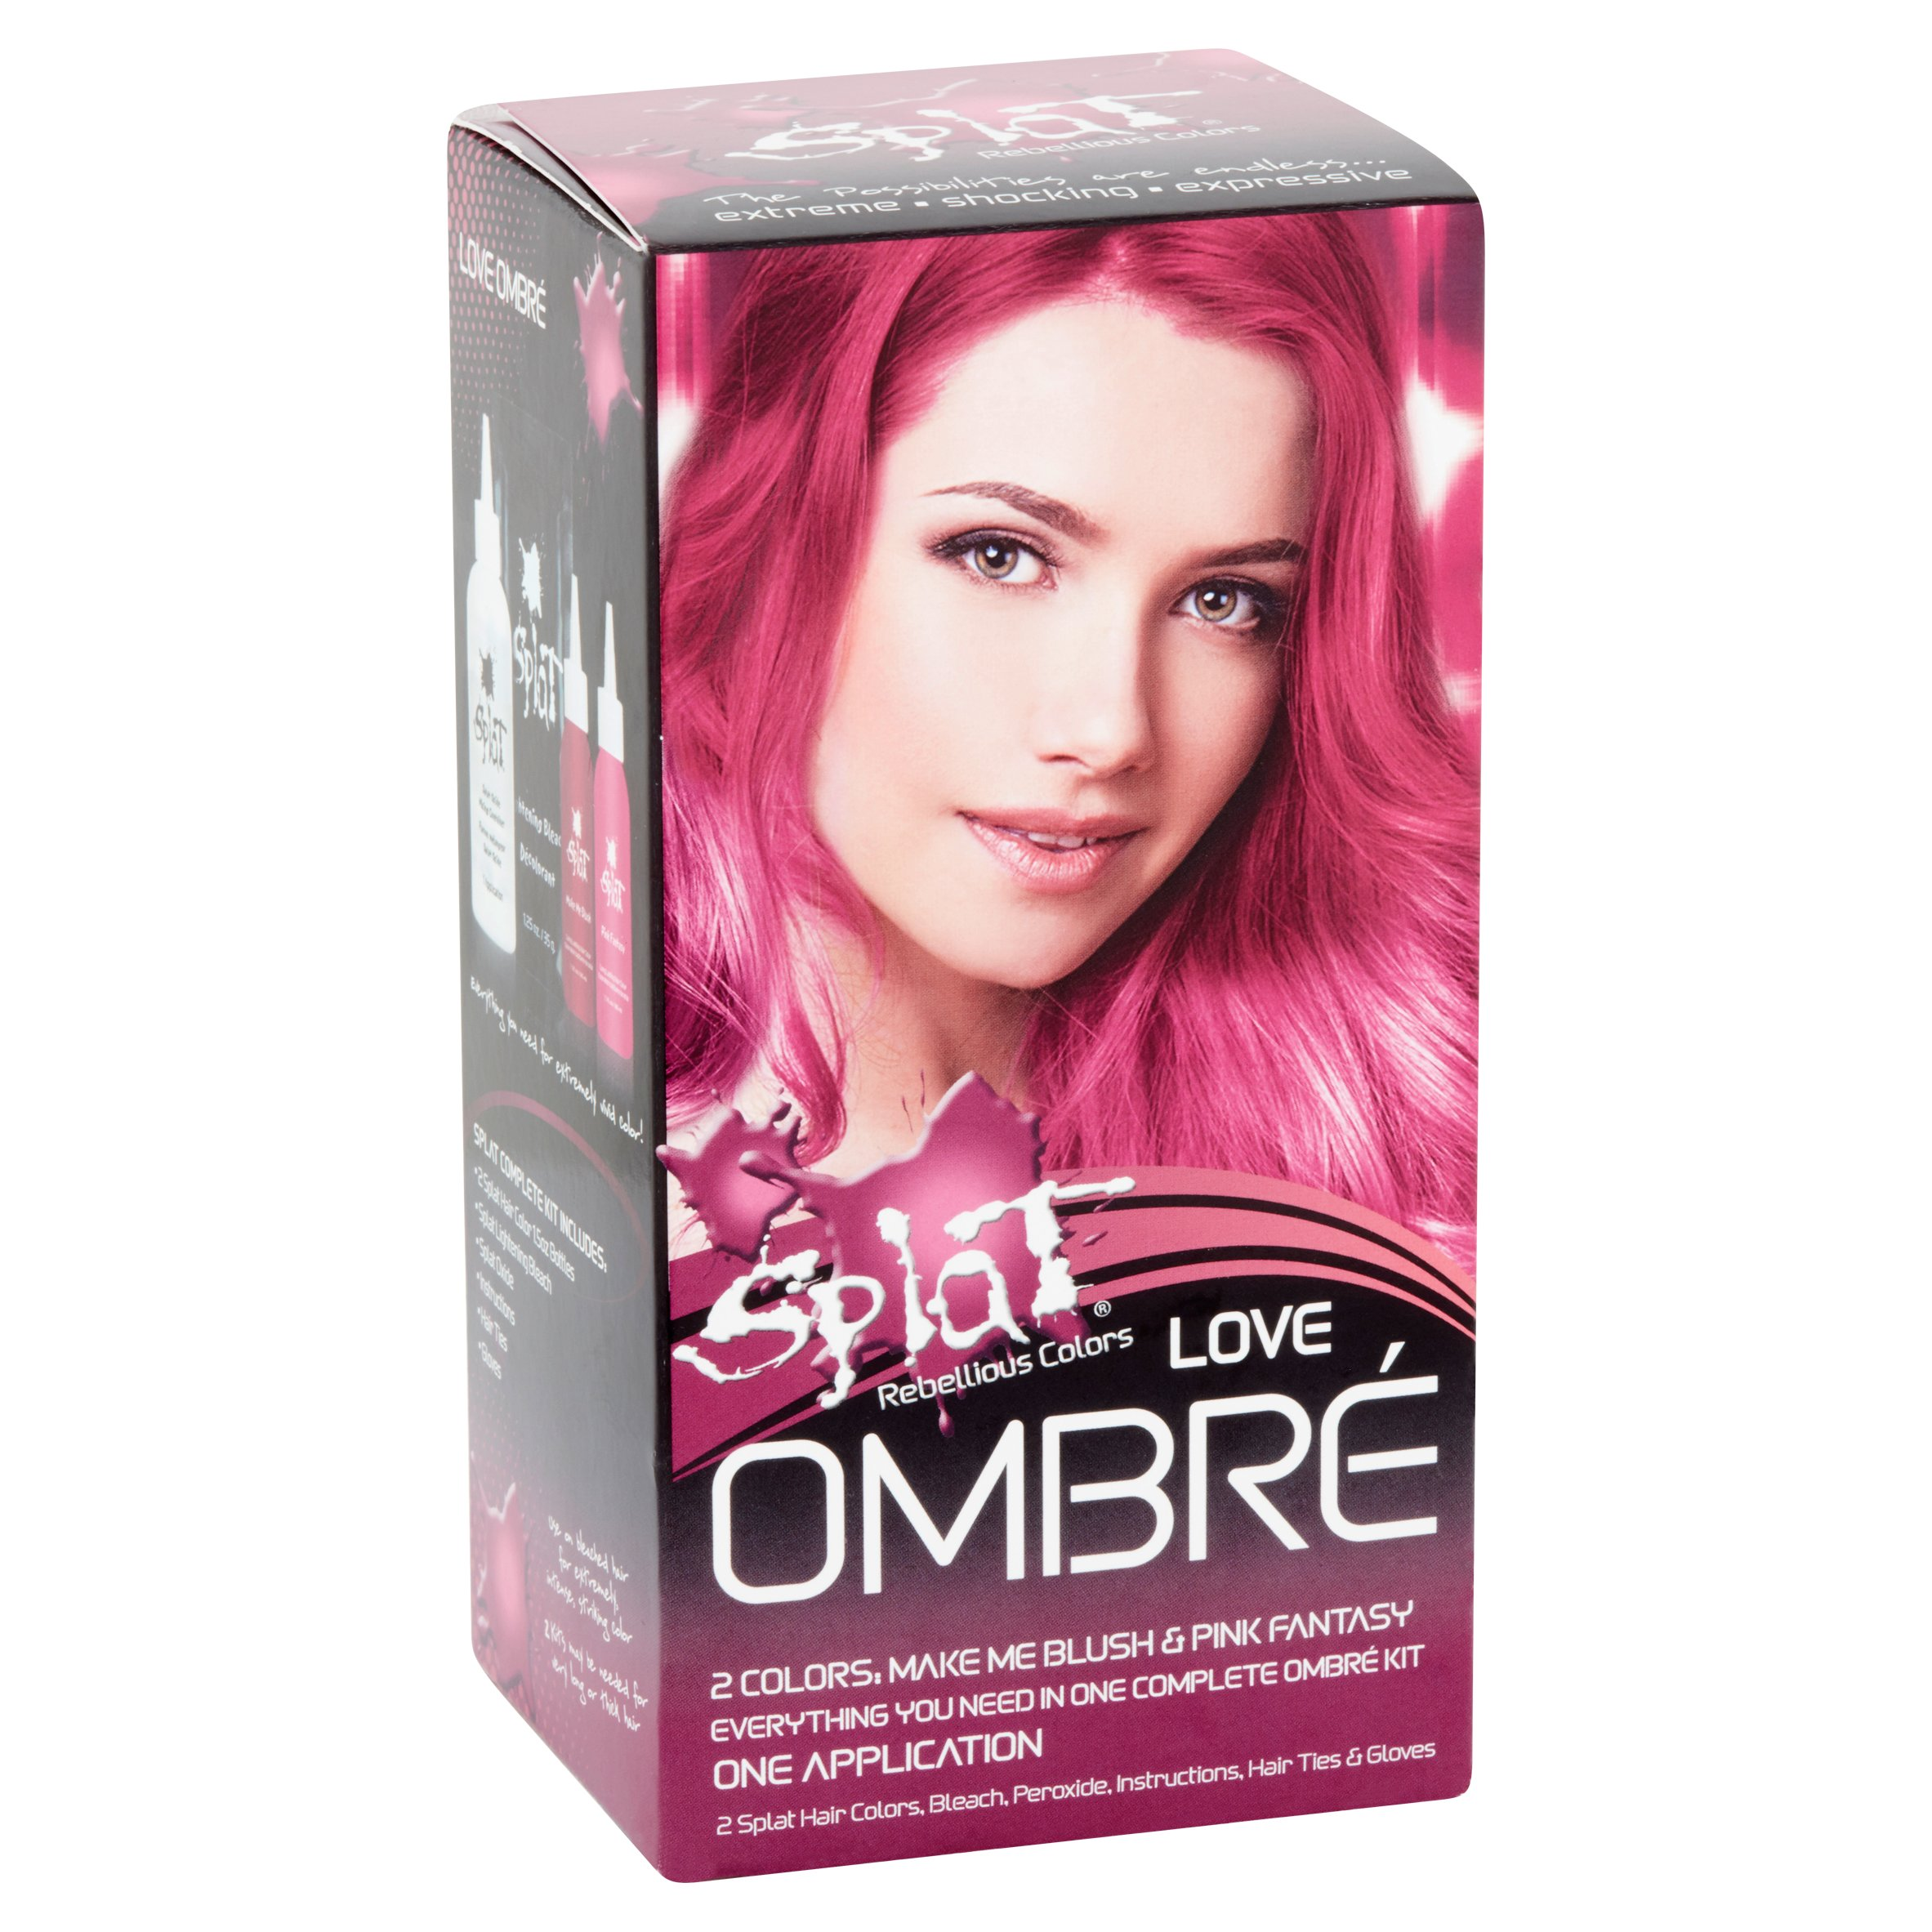 splat rebellious colors semi permanent complete kit